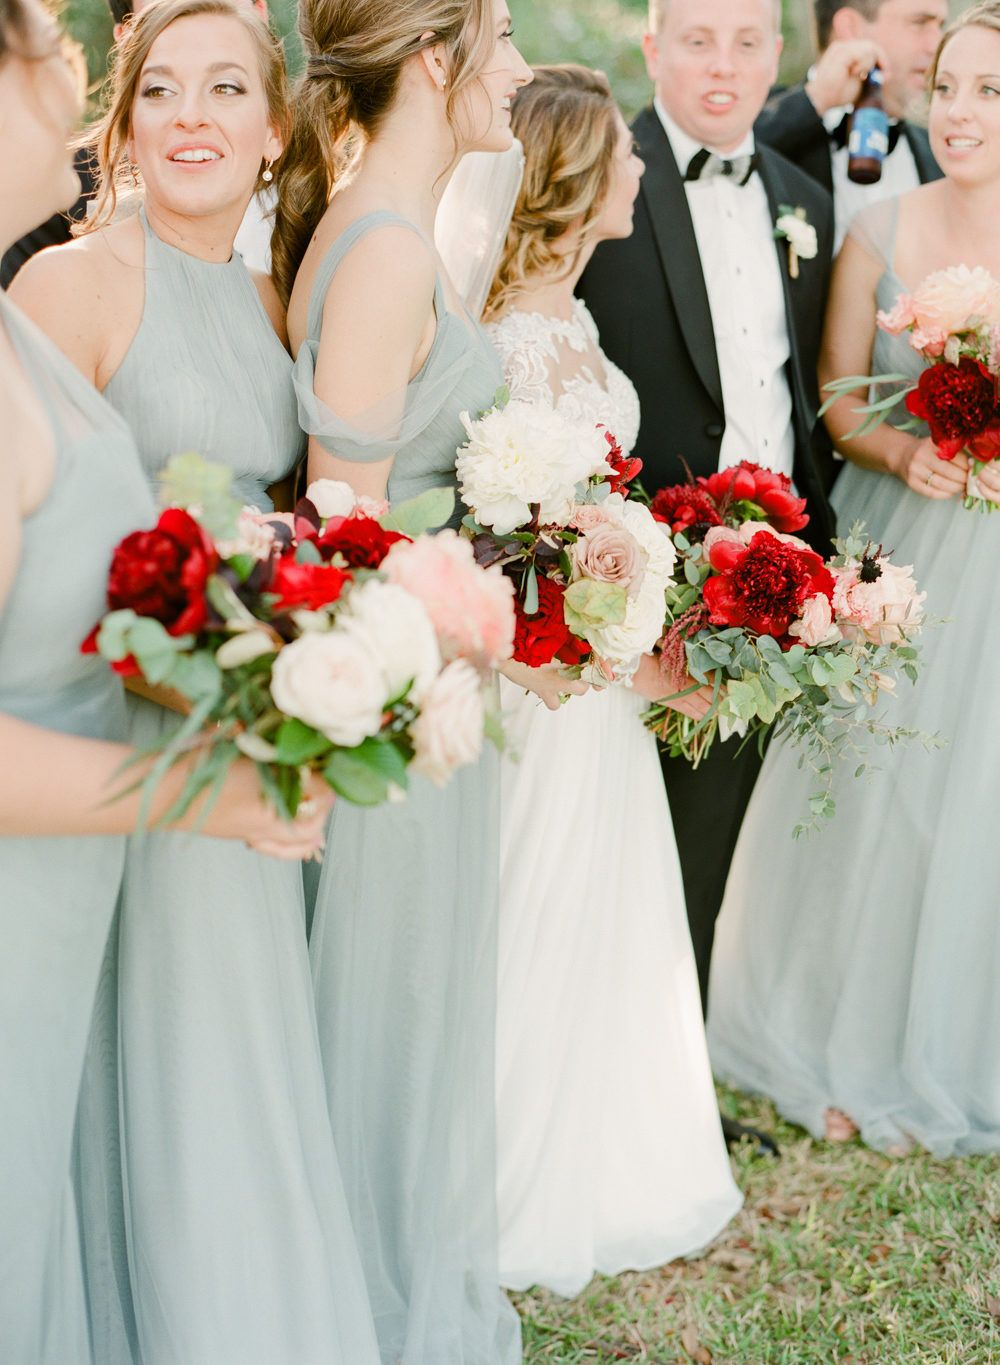 This is how to keep blush looking fresh in bridesmaid style